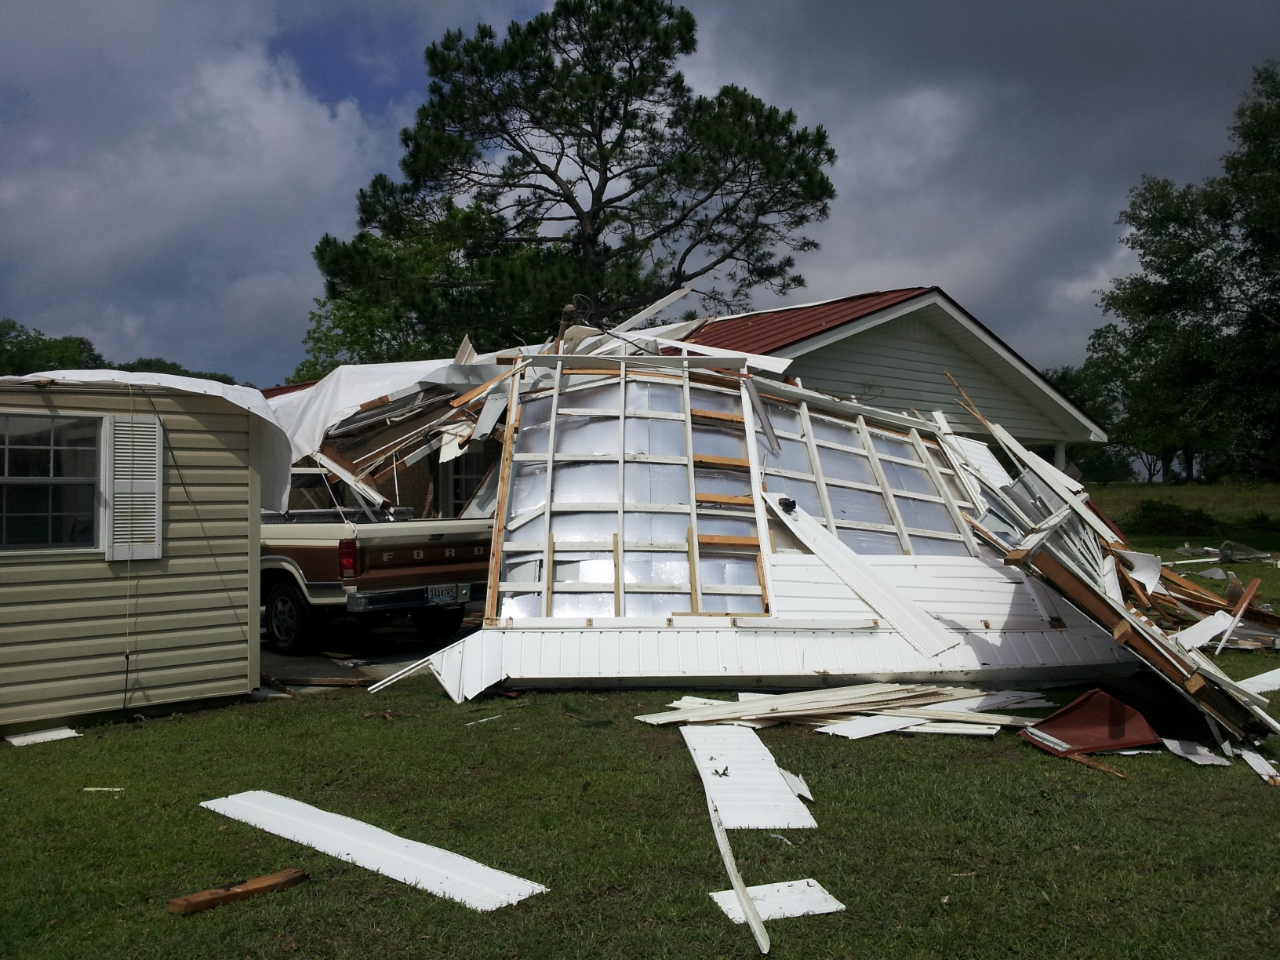 A home along County Road 9 in Geneva County damaged by an EF1 tornado on May 10, 2014.